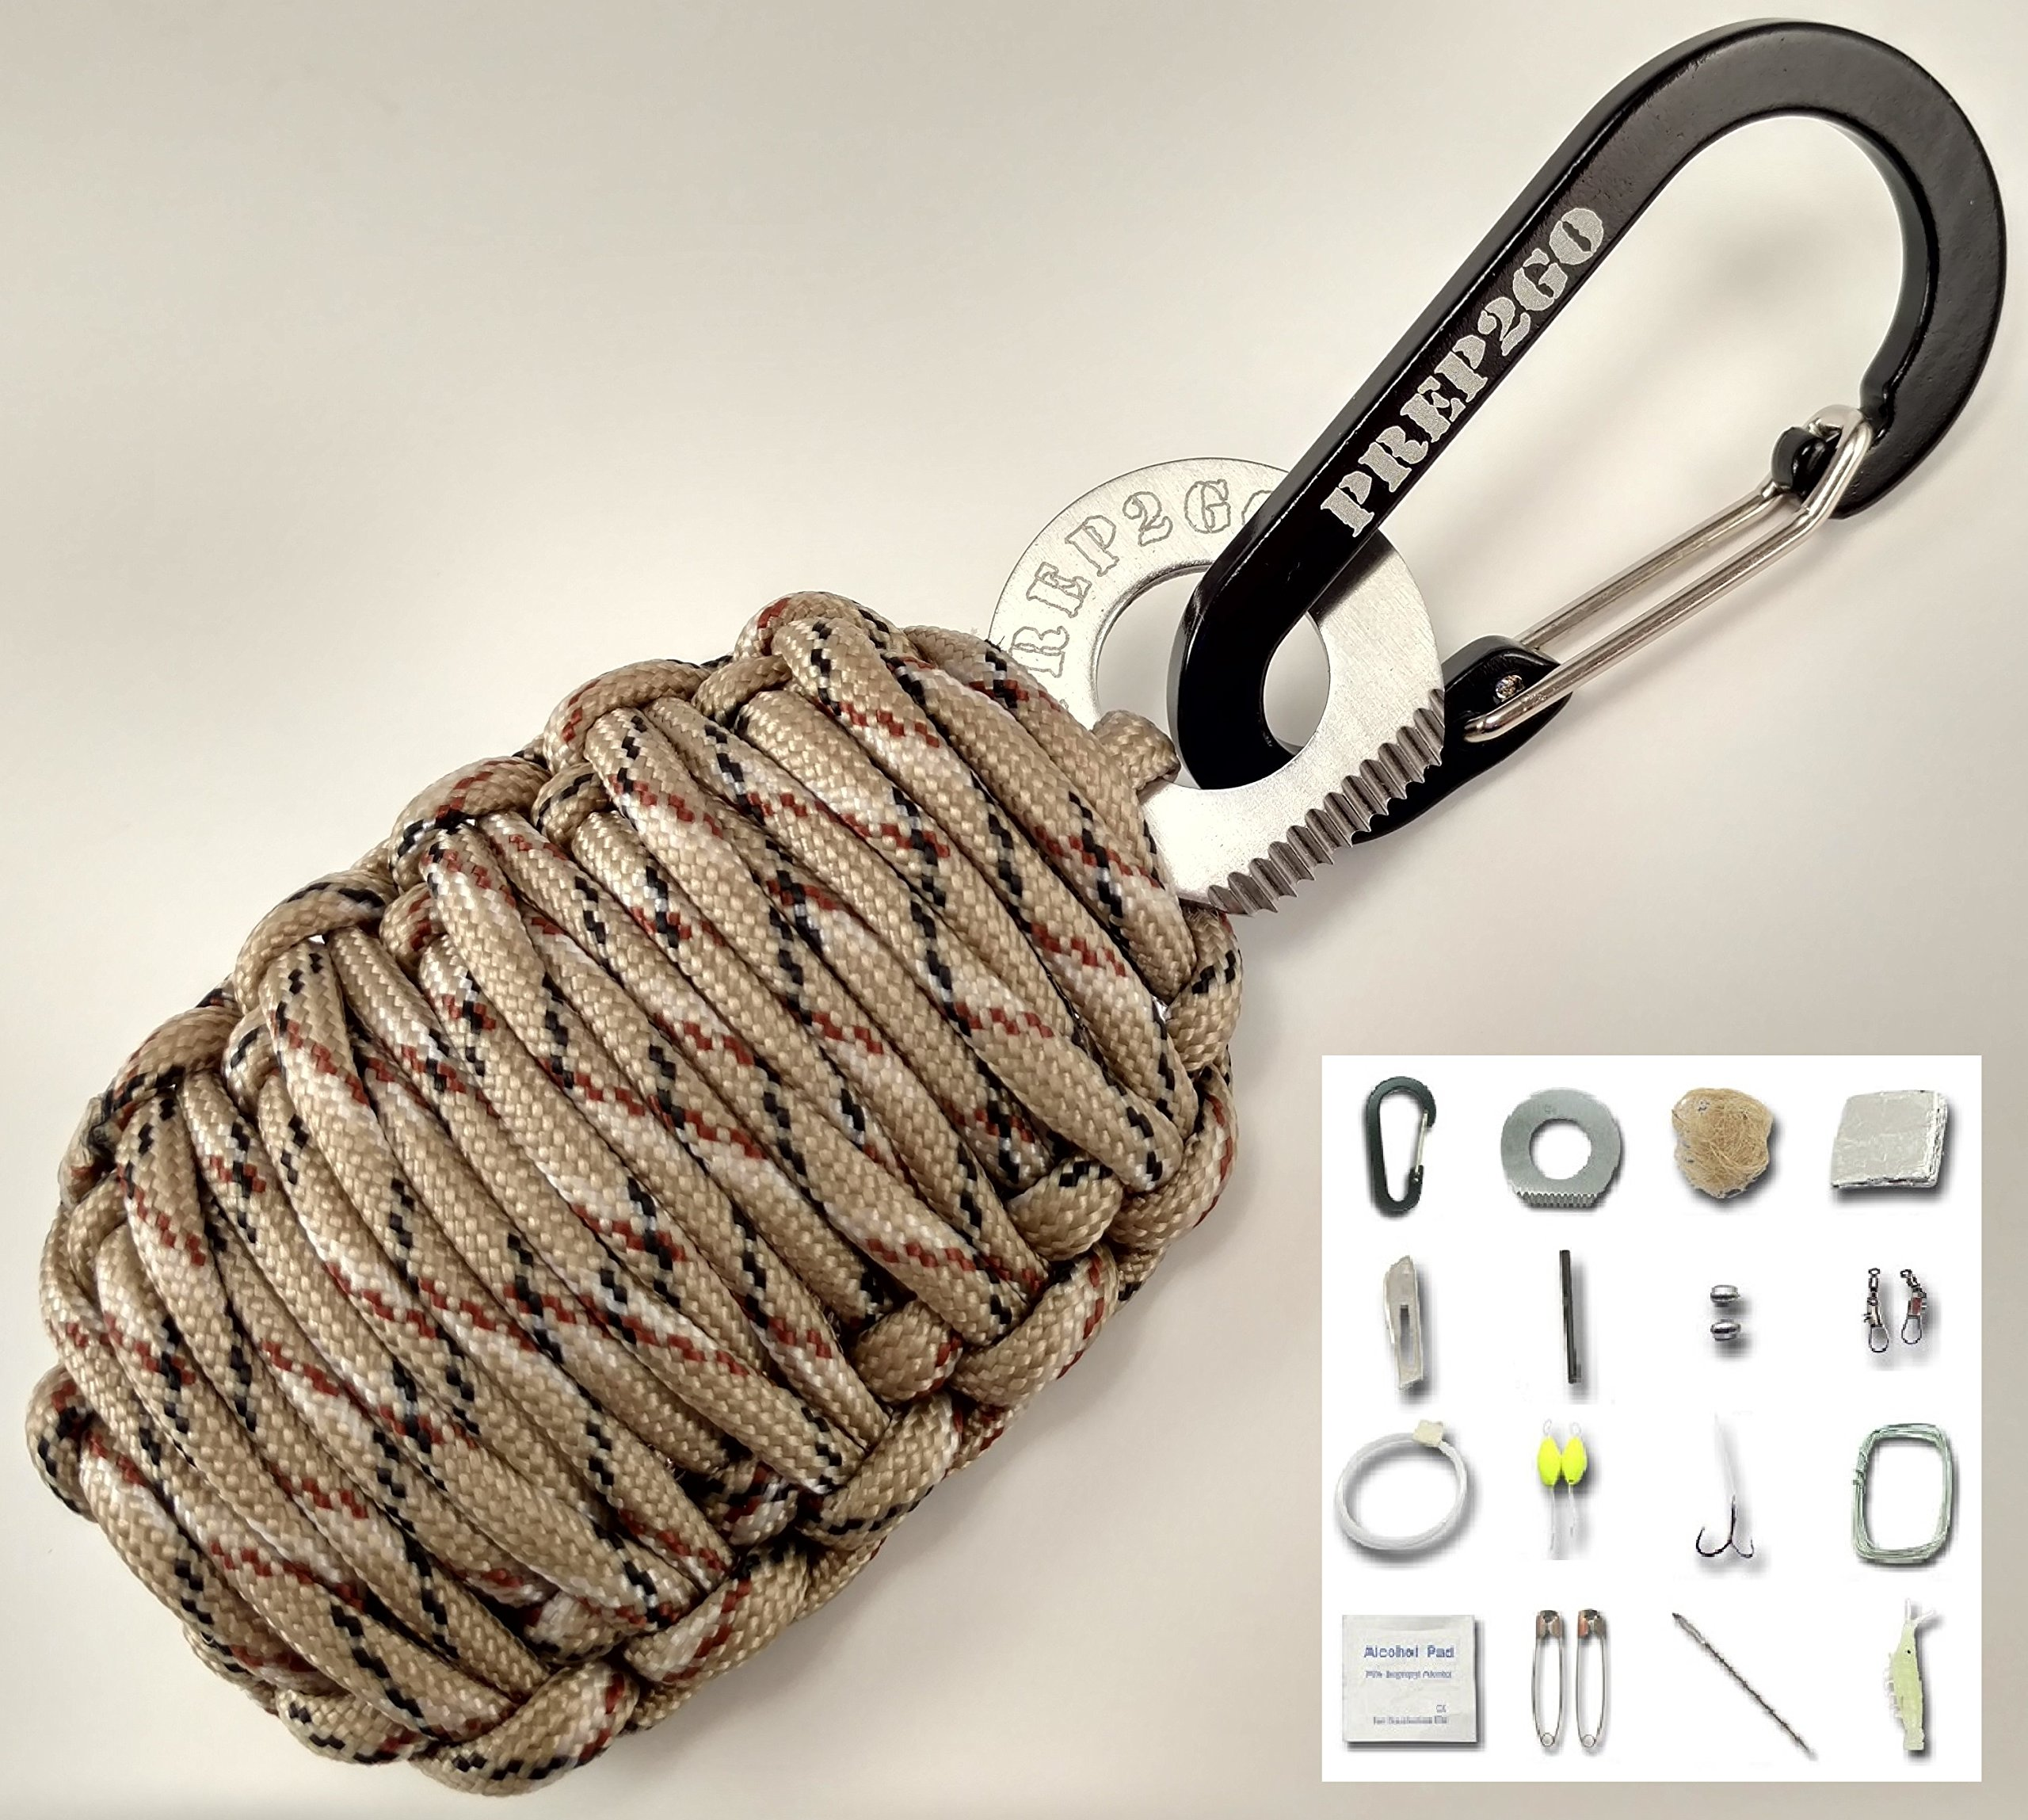 PREP2GO Paracord Boy Scout Survival Grenade Gift | Emergency (24pc) Kit Military Grade Wilderness Prepper Gear-Camping Hiking Hunting. Moms Feel Safe! Your Kids can get Food, Fire & Shelter When Lost